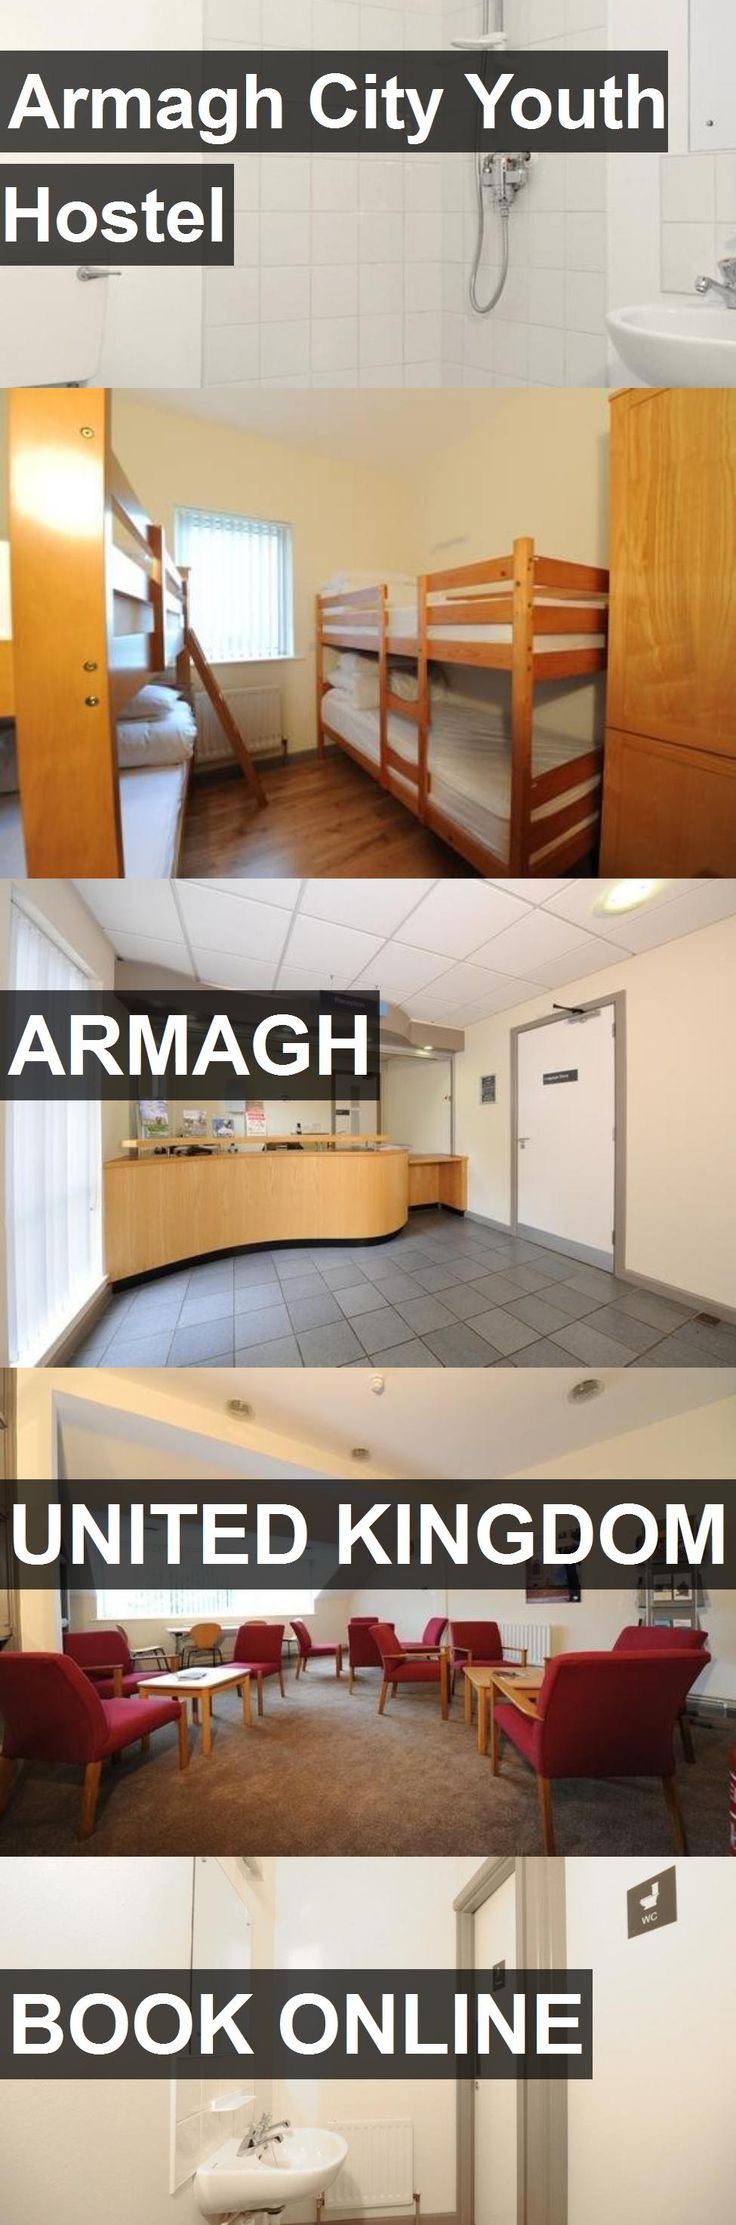 Armagh City Youth Hostel in Armagh, United Kingdom. For more information, photos, reviews and best prices please follow the link. #UnitedKingdom #Armagh #travel #vacation #hostel